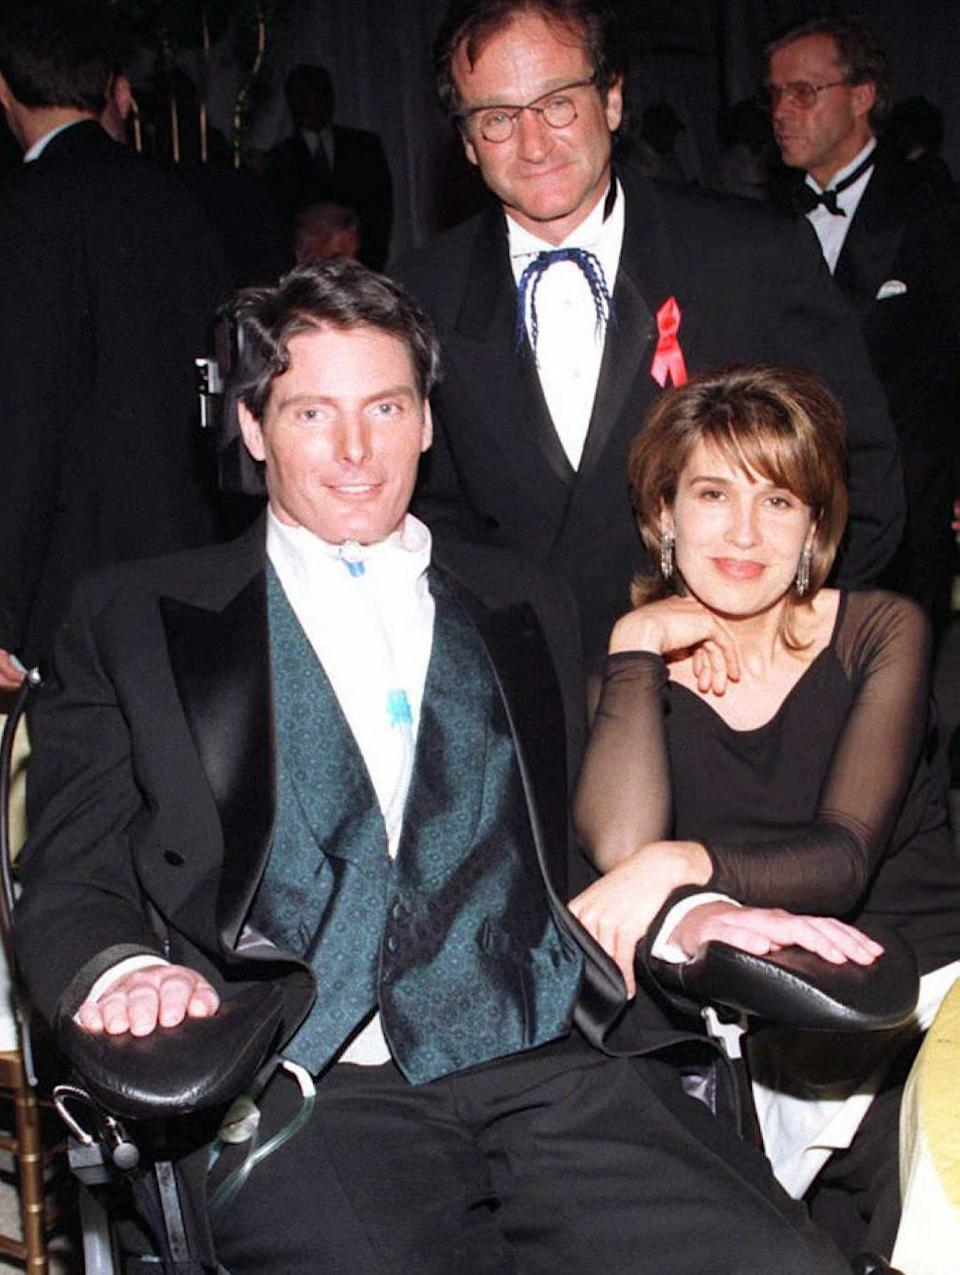 Actor Christopher Reeve (L), wife Dana (R) and Robin Williams (C) at the Governor's Ball after the 68th Annual Academy Awards. Vince Bucci/AFP/Getty Images